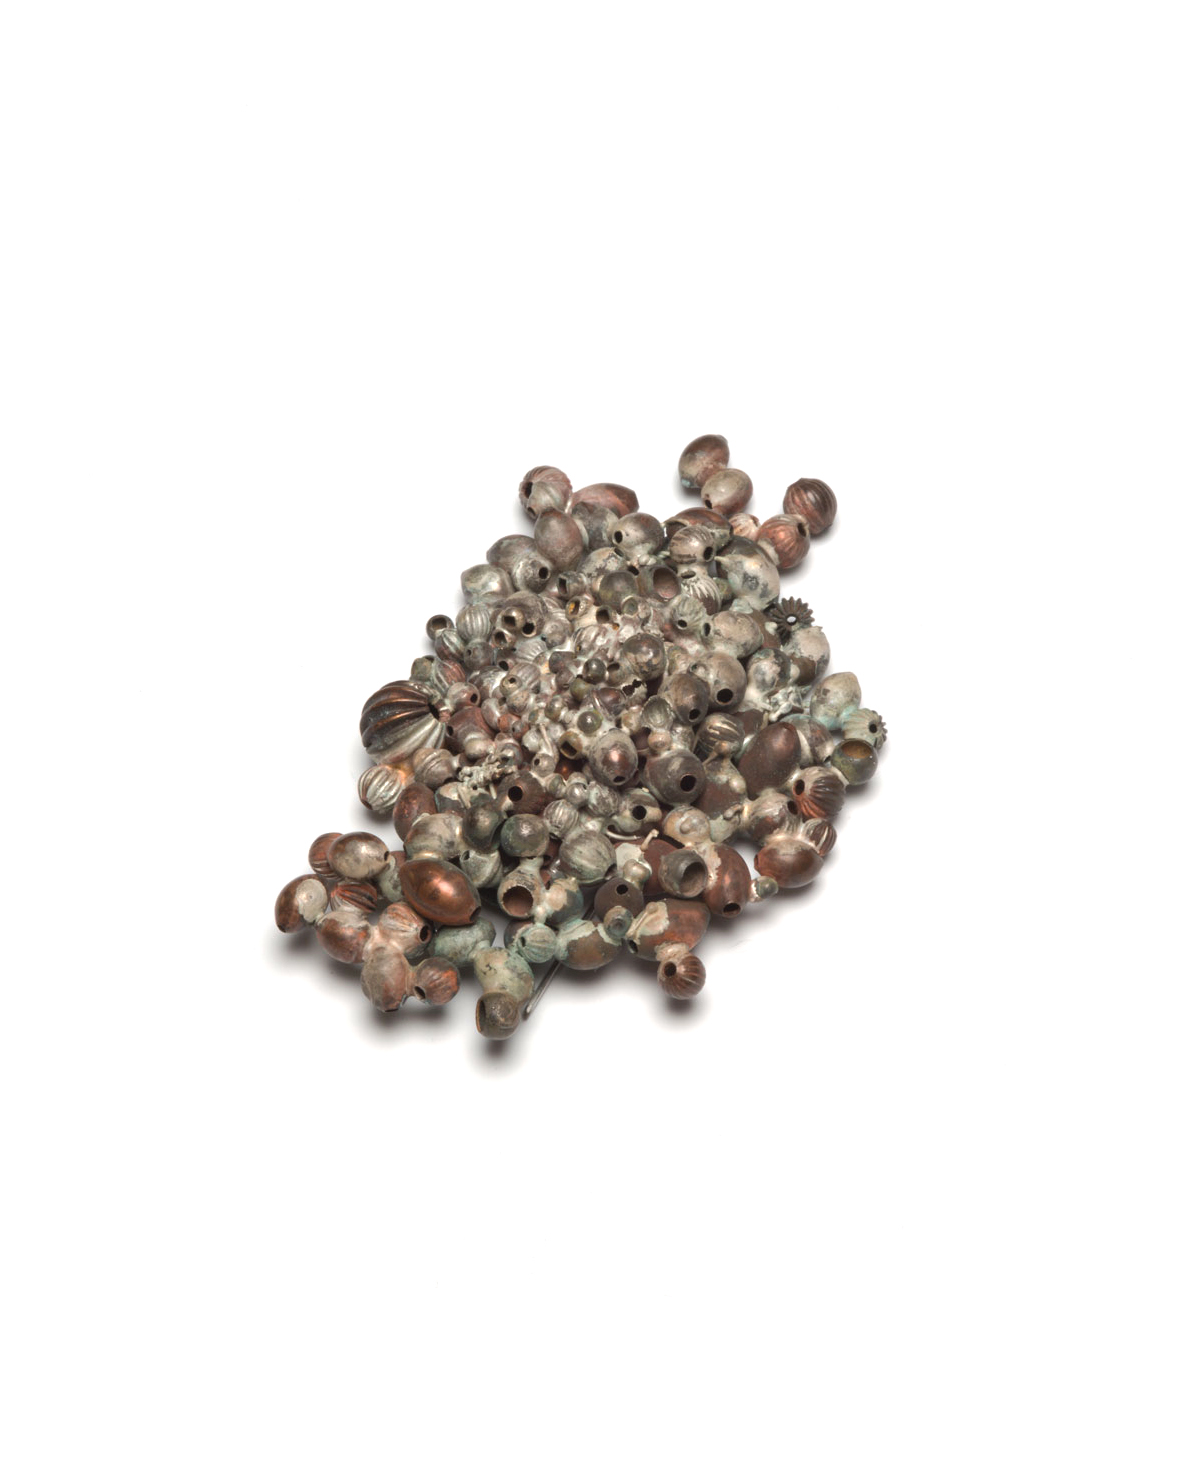 Winfried Krüger, untitled, 2014, brooch; nickel silver, brass, 90 x 50 mm, €1940